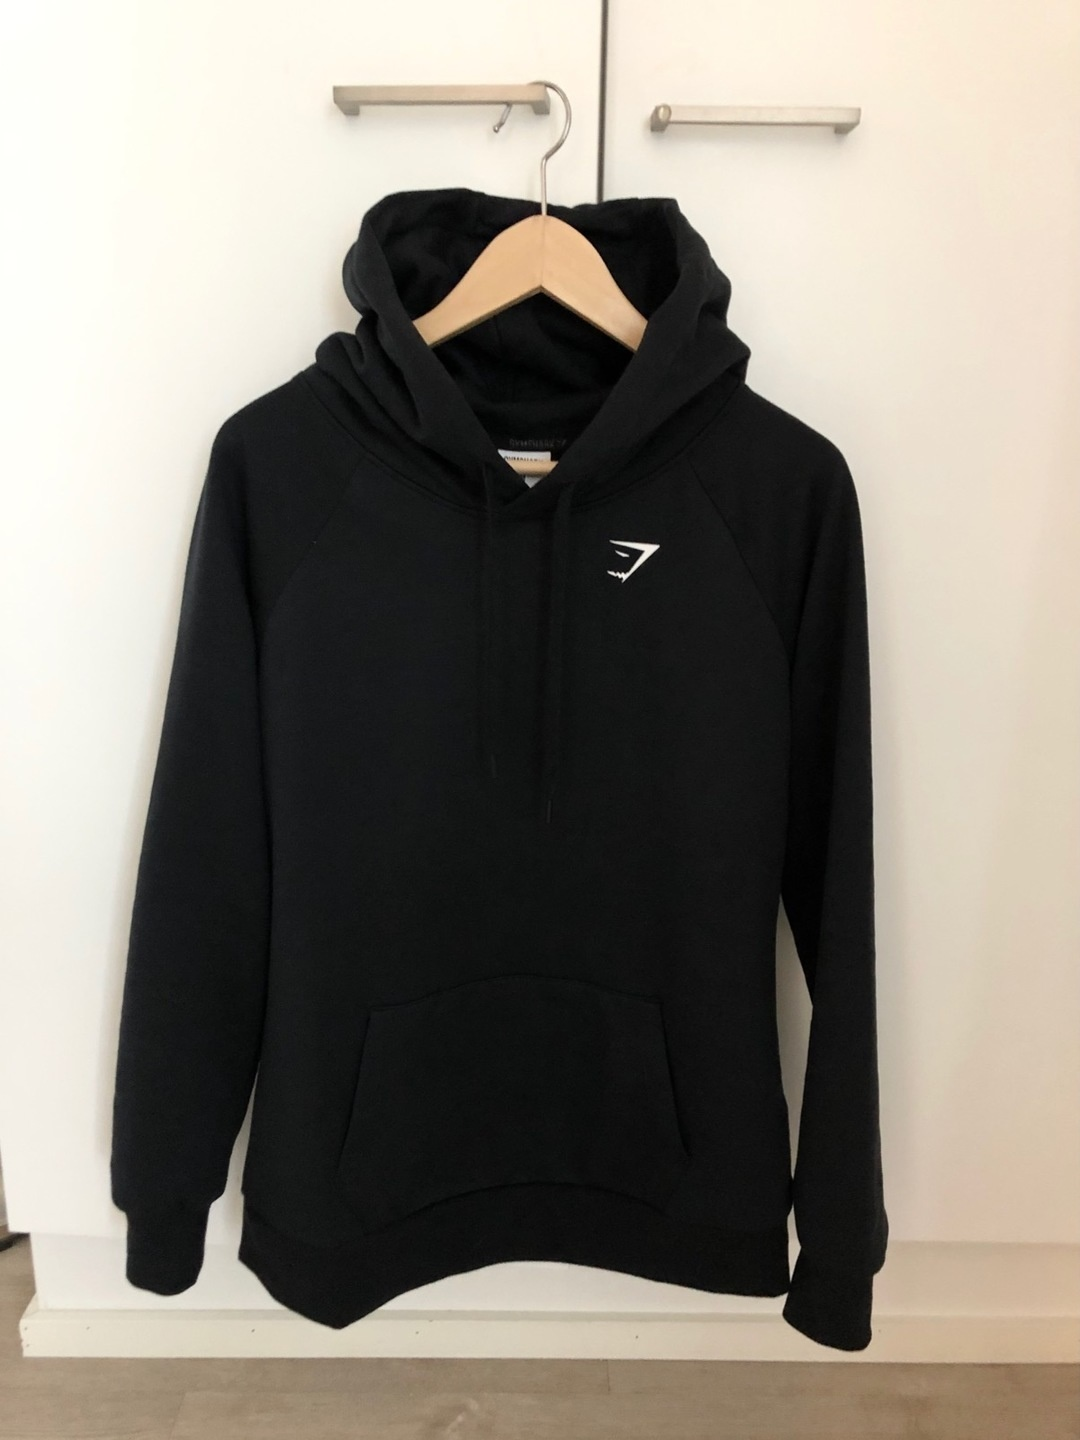 Women's hoodies & sweatshirts - GYMSHARK photo 2